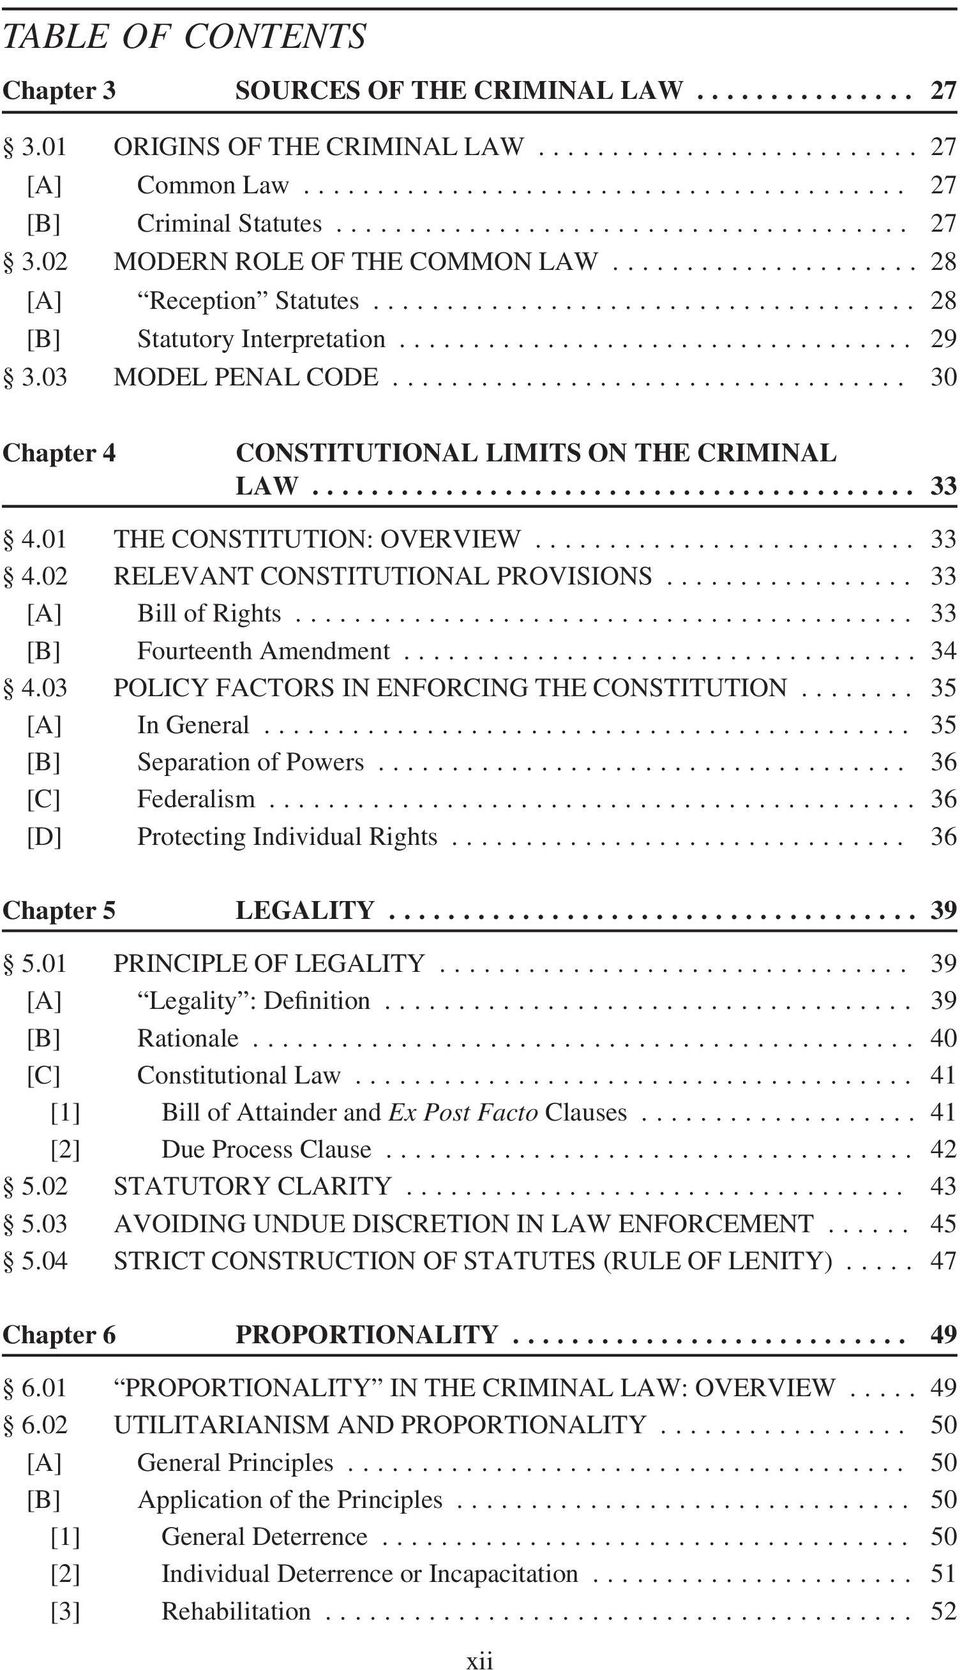 03 MODEL PENAL CODE................................... 30 Chapter 4 CONSTITUTIONAL LIMITS ON THE CRIMINAL LAW......................................... 33 4.01 THE CONSTITUTION: OVERVIEW.......................... 33 4.02 RELEVANT CONSTITUTIONAL PROVISIONS.